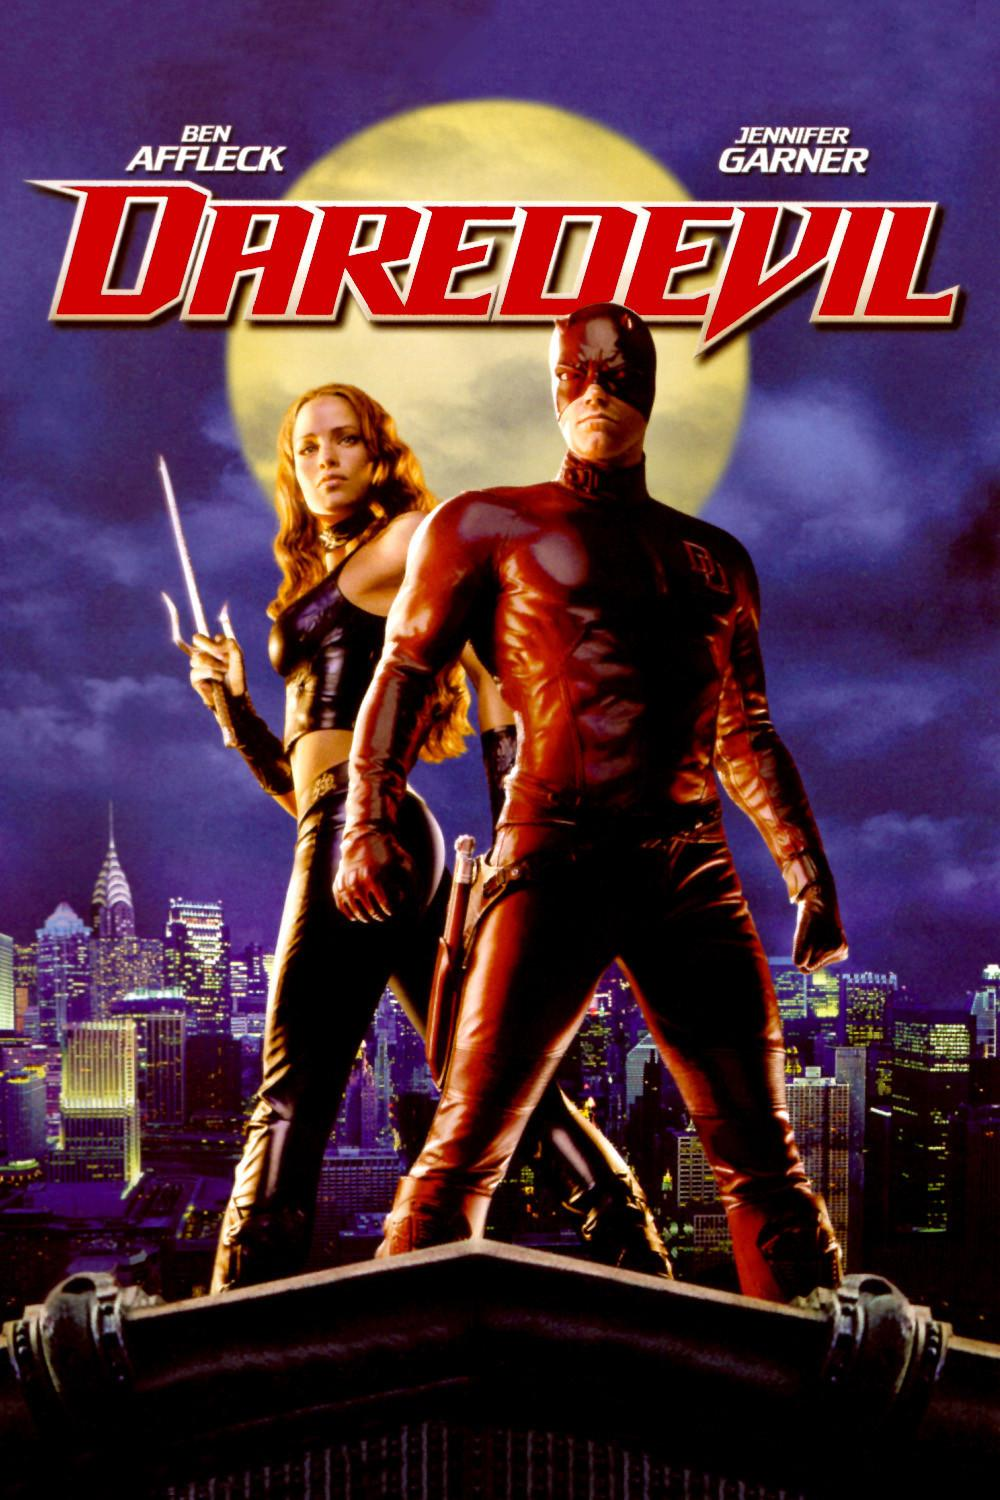 Daredevil-2003-Film